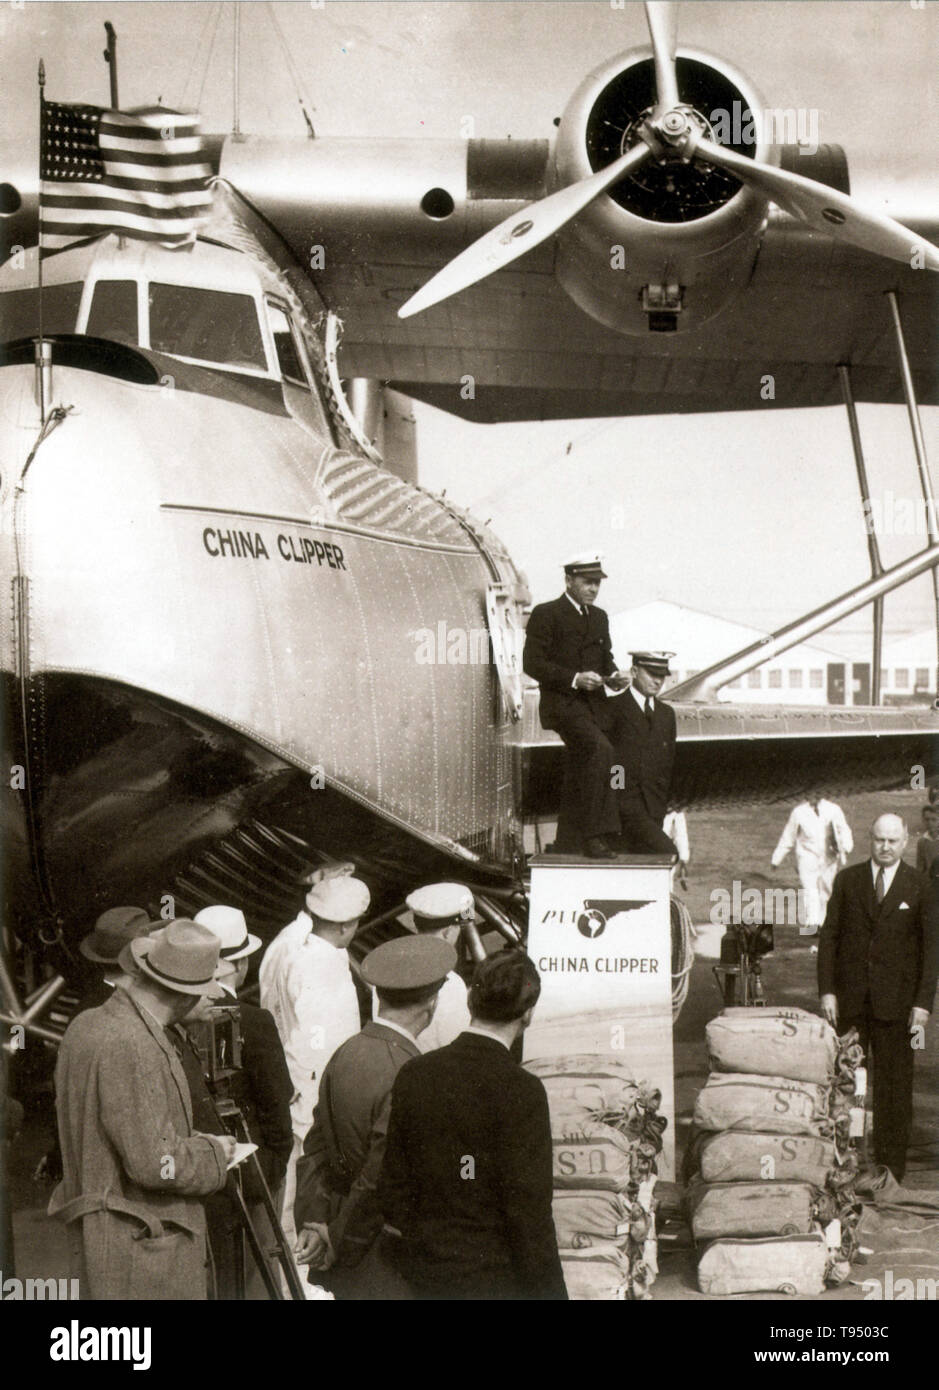 China Clipper (NC14716) was the first of three Martin M-130 four-engine flying boats built for Pan American Airways and was used to inaugurate the first commercial transpacific airmail service from San Francisco to Manila in November 1935. Built at a cost of $417,000 by the Glenn L. Martin Company in Baltimore, Maryland, it was delivered to Pan Am on October 9, 1935. It was one of the largest airplanes of its time. On November 29, the airplane reached its destination, Manila, after traveling via Honolulu, Midway Island, Wake Island, and Guam, and delivered over 110,000 pieces of mail. During W - Stock Image